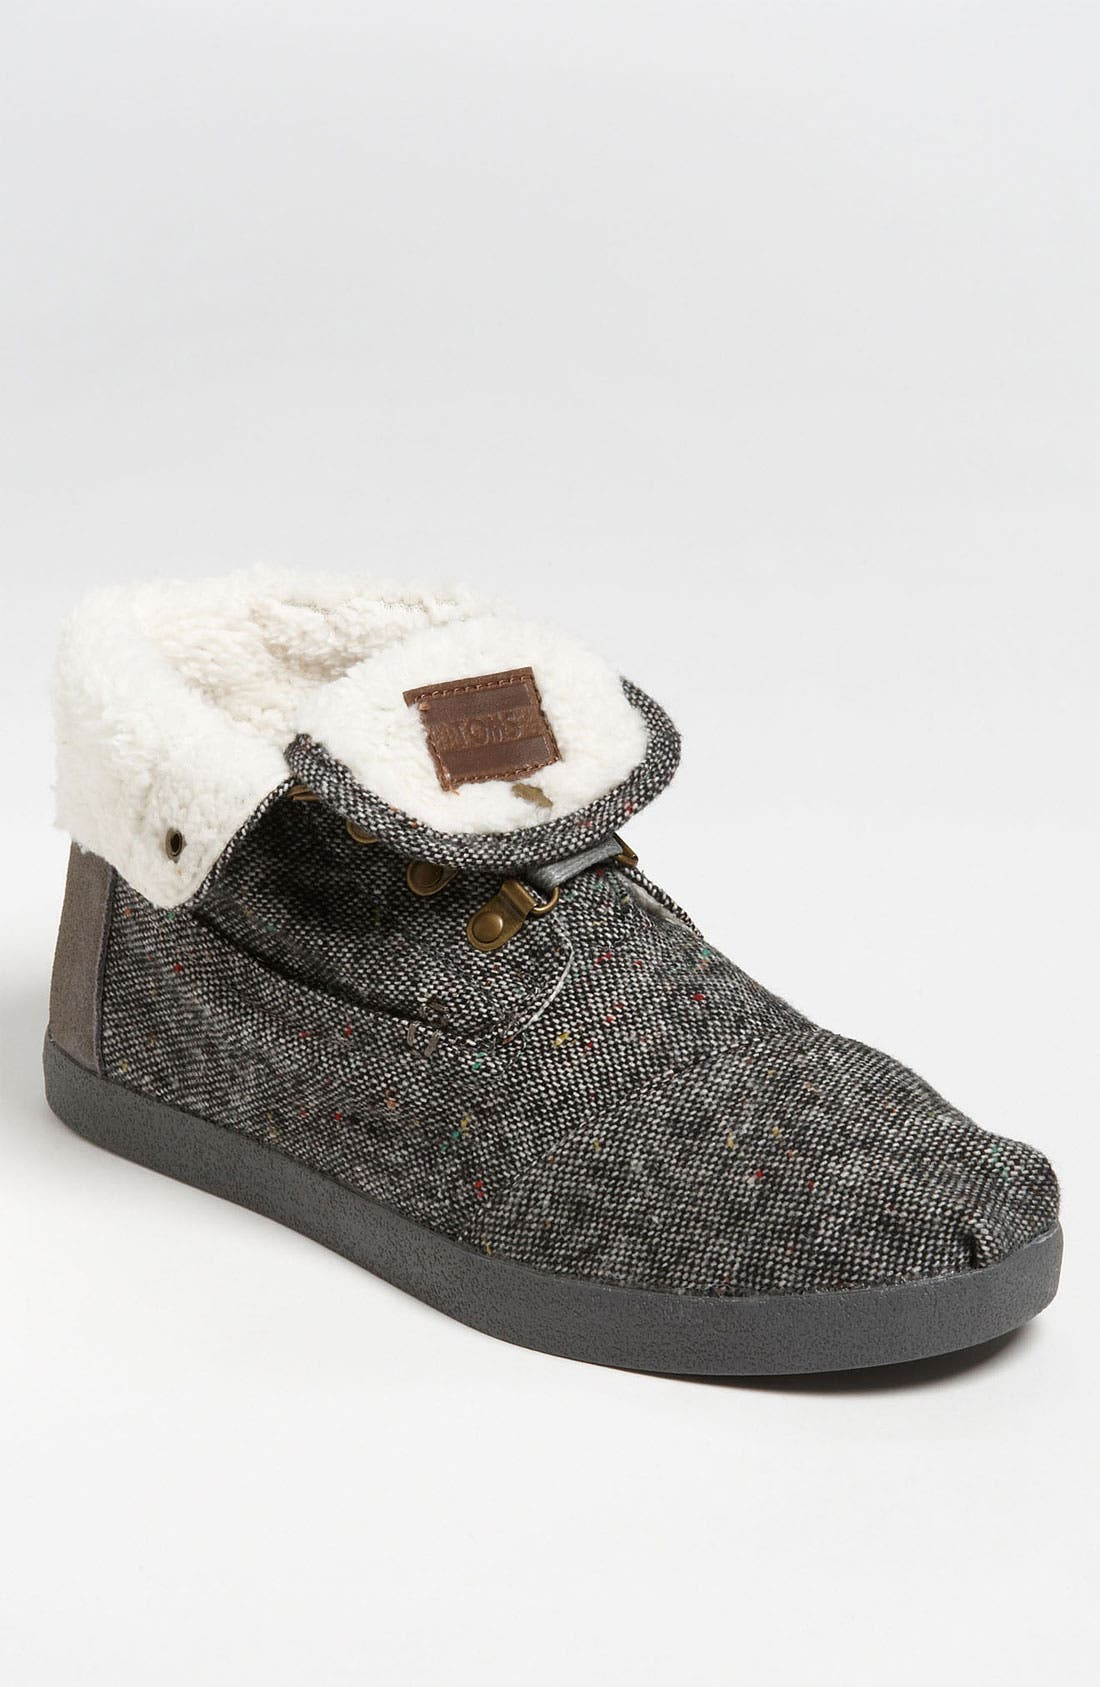 Alternate Image 1 Selected - TOMS 'Botas Highlands - Holden' Fleece Boot (Men) (Nordstrom Exclusive)